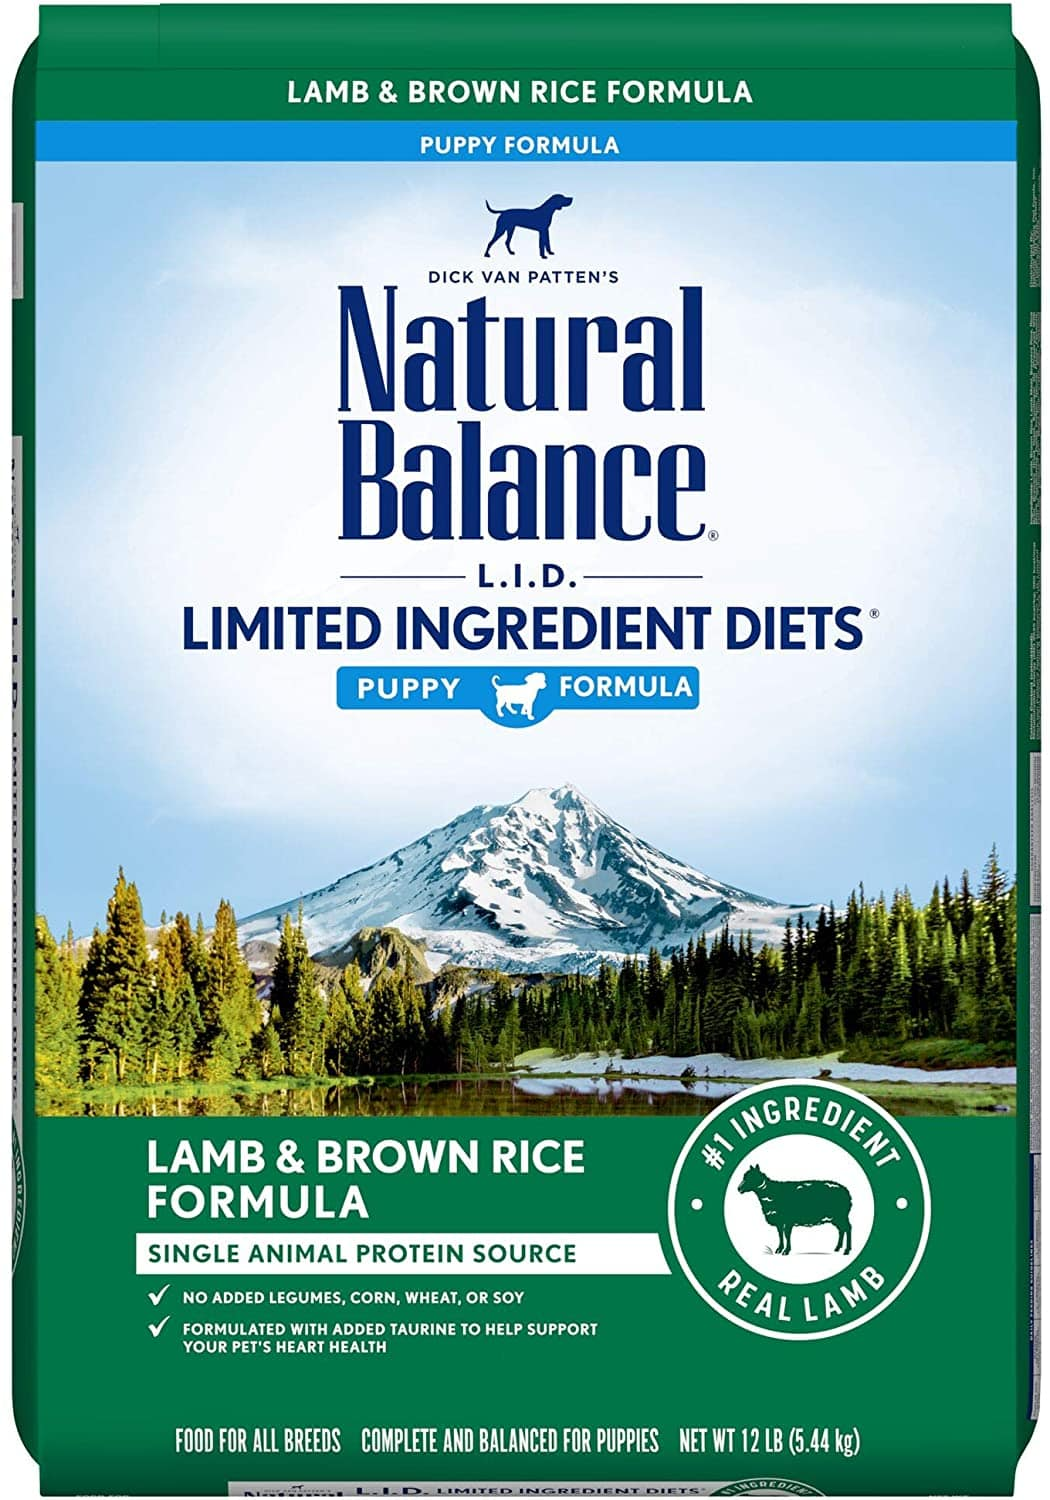 12-Lbs Natural Balance Limited Ingredient Diet Puppy Recipe Dry Dog Food $15.35 w/ S&S ($10.85 w/ First S&S Order) + Free Shipping w/ Prime